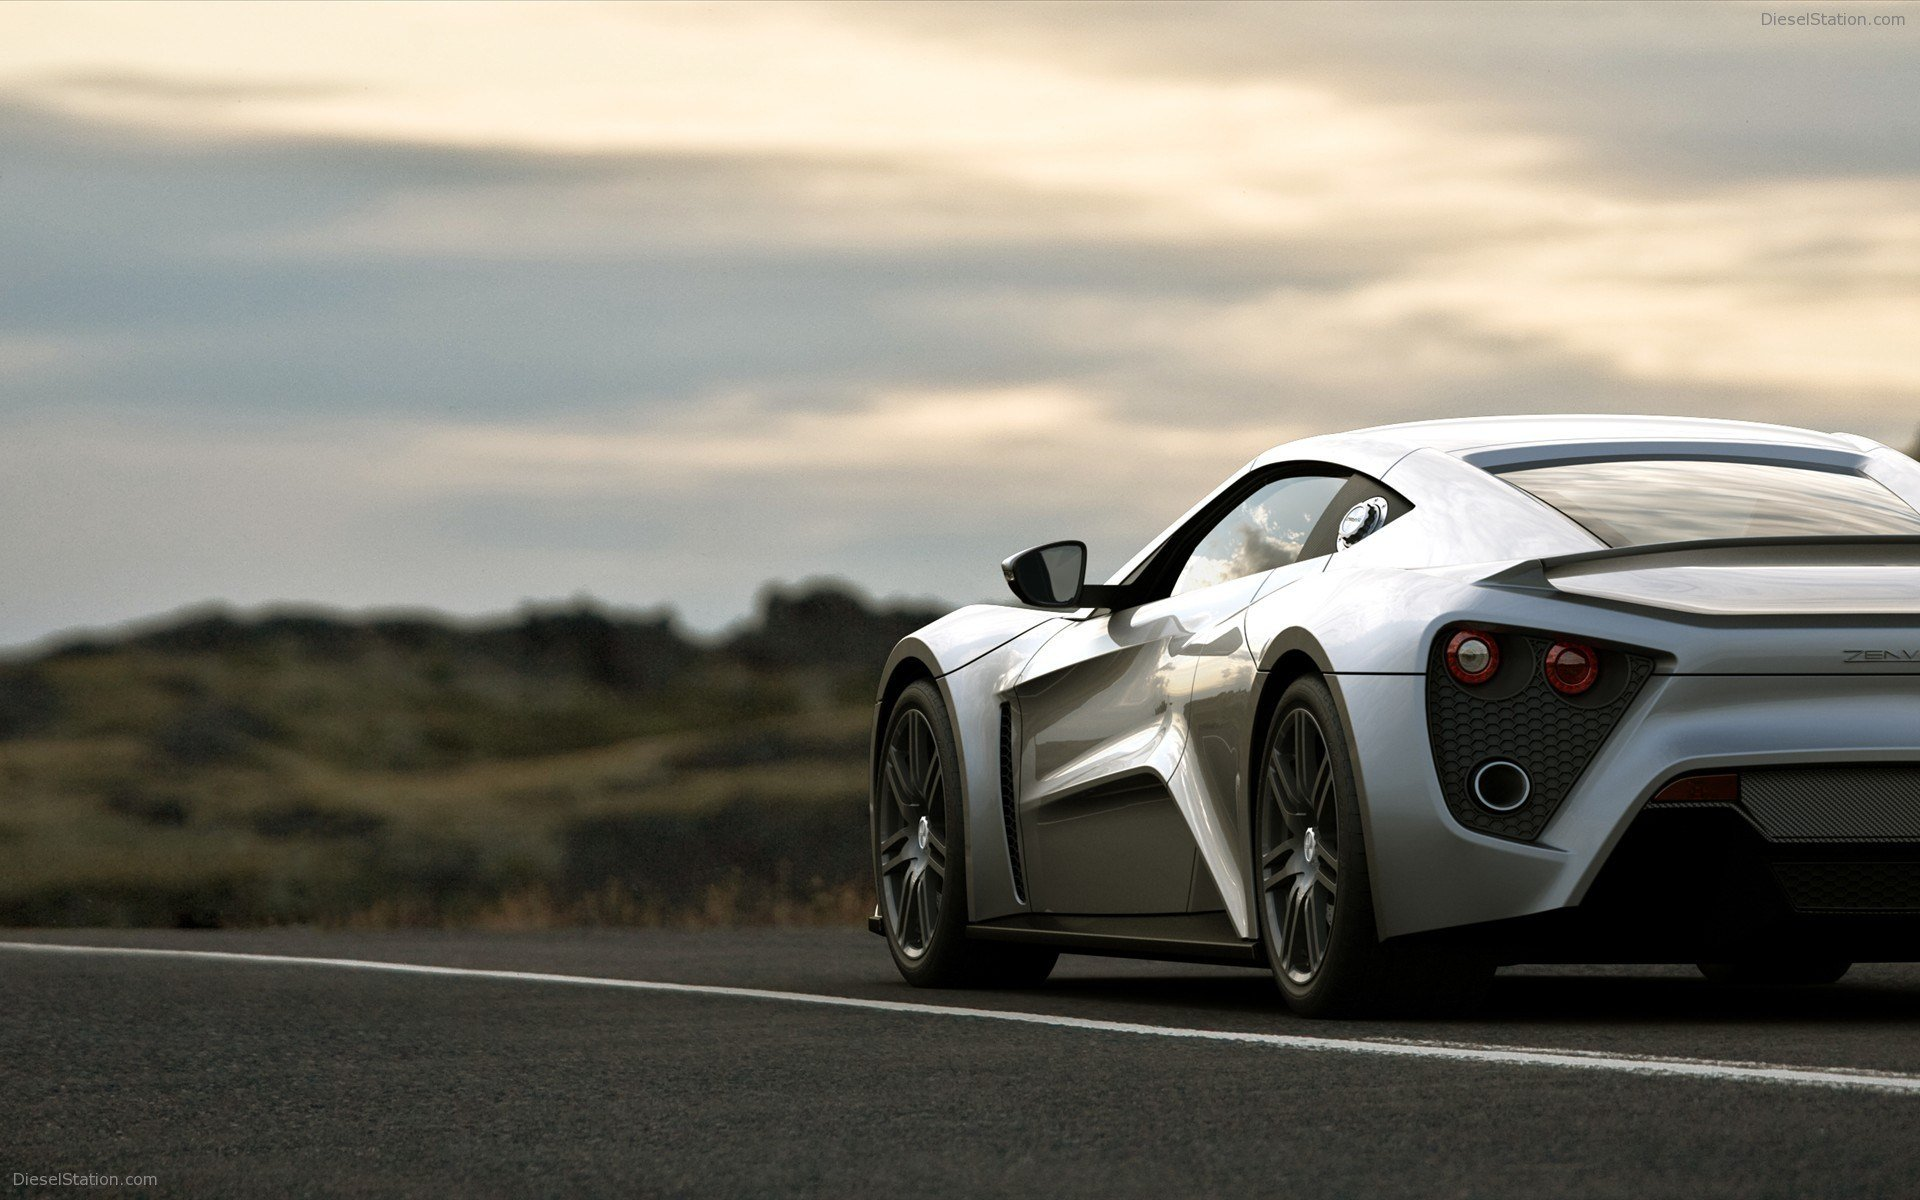 New Zenvo Devon St1 Widescreen Exotic Car Wallpapers 08 Of 74 On This Month